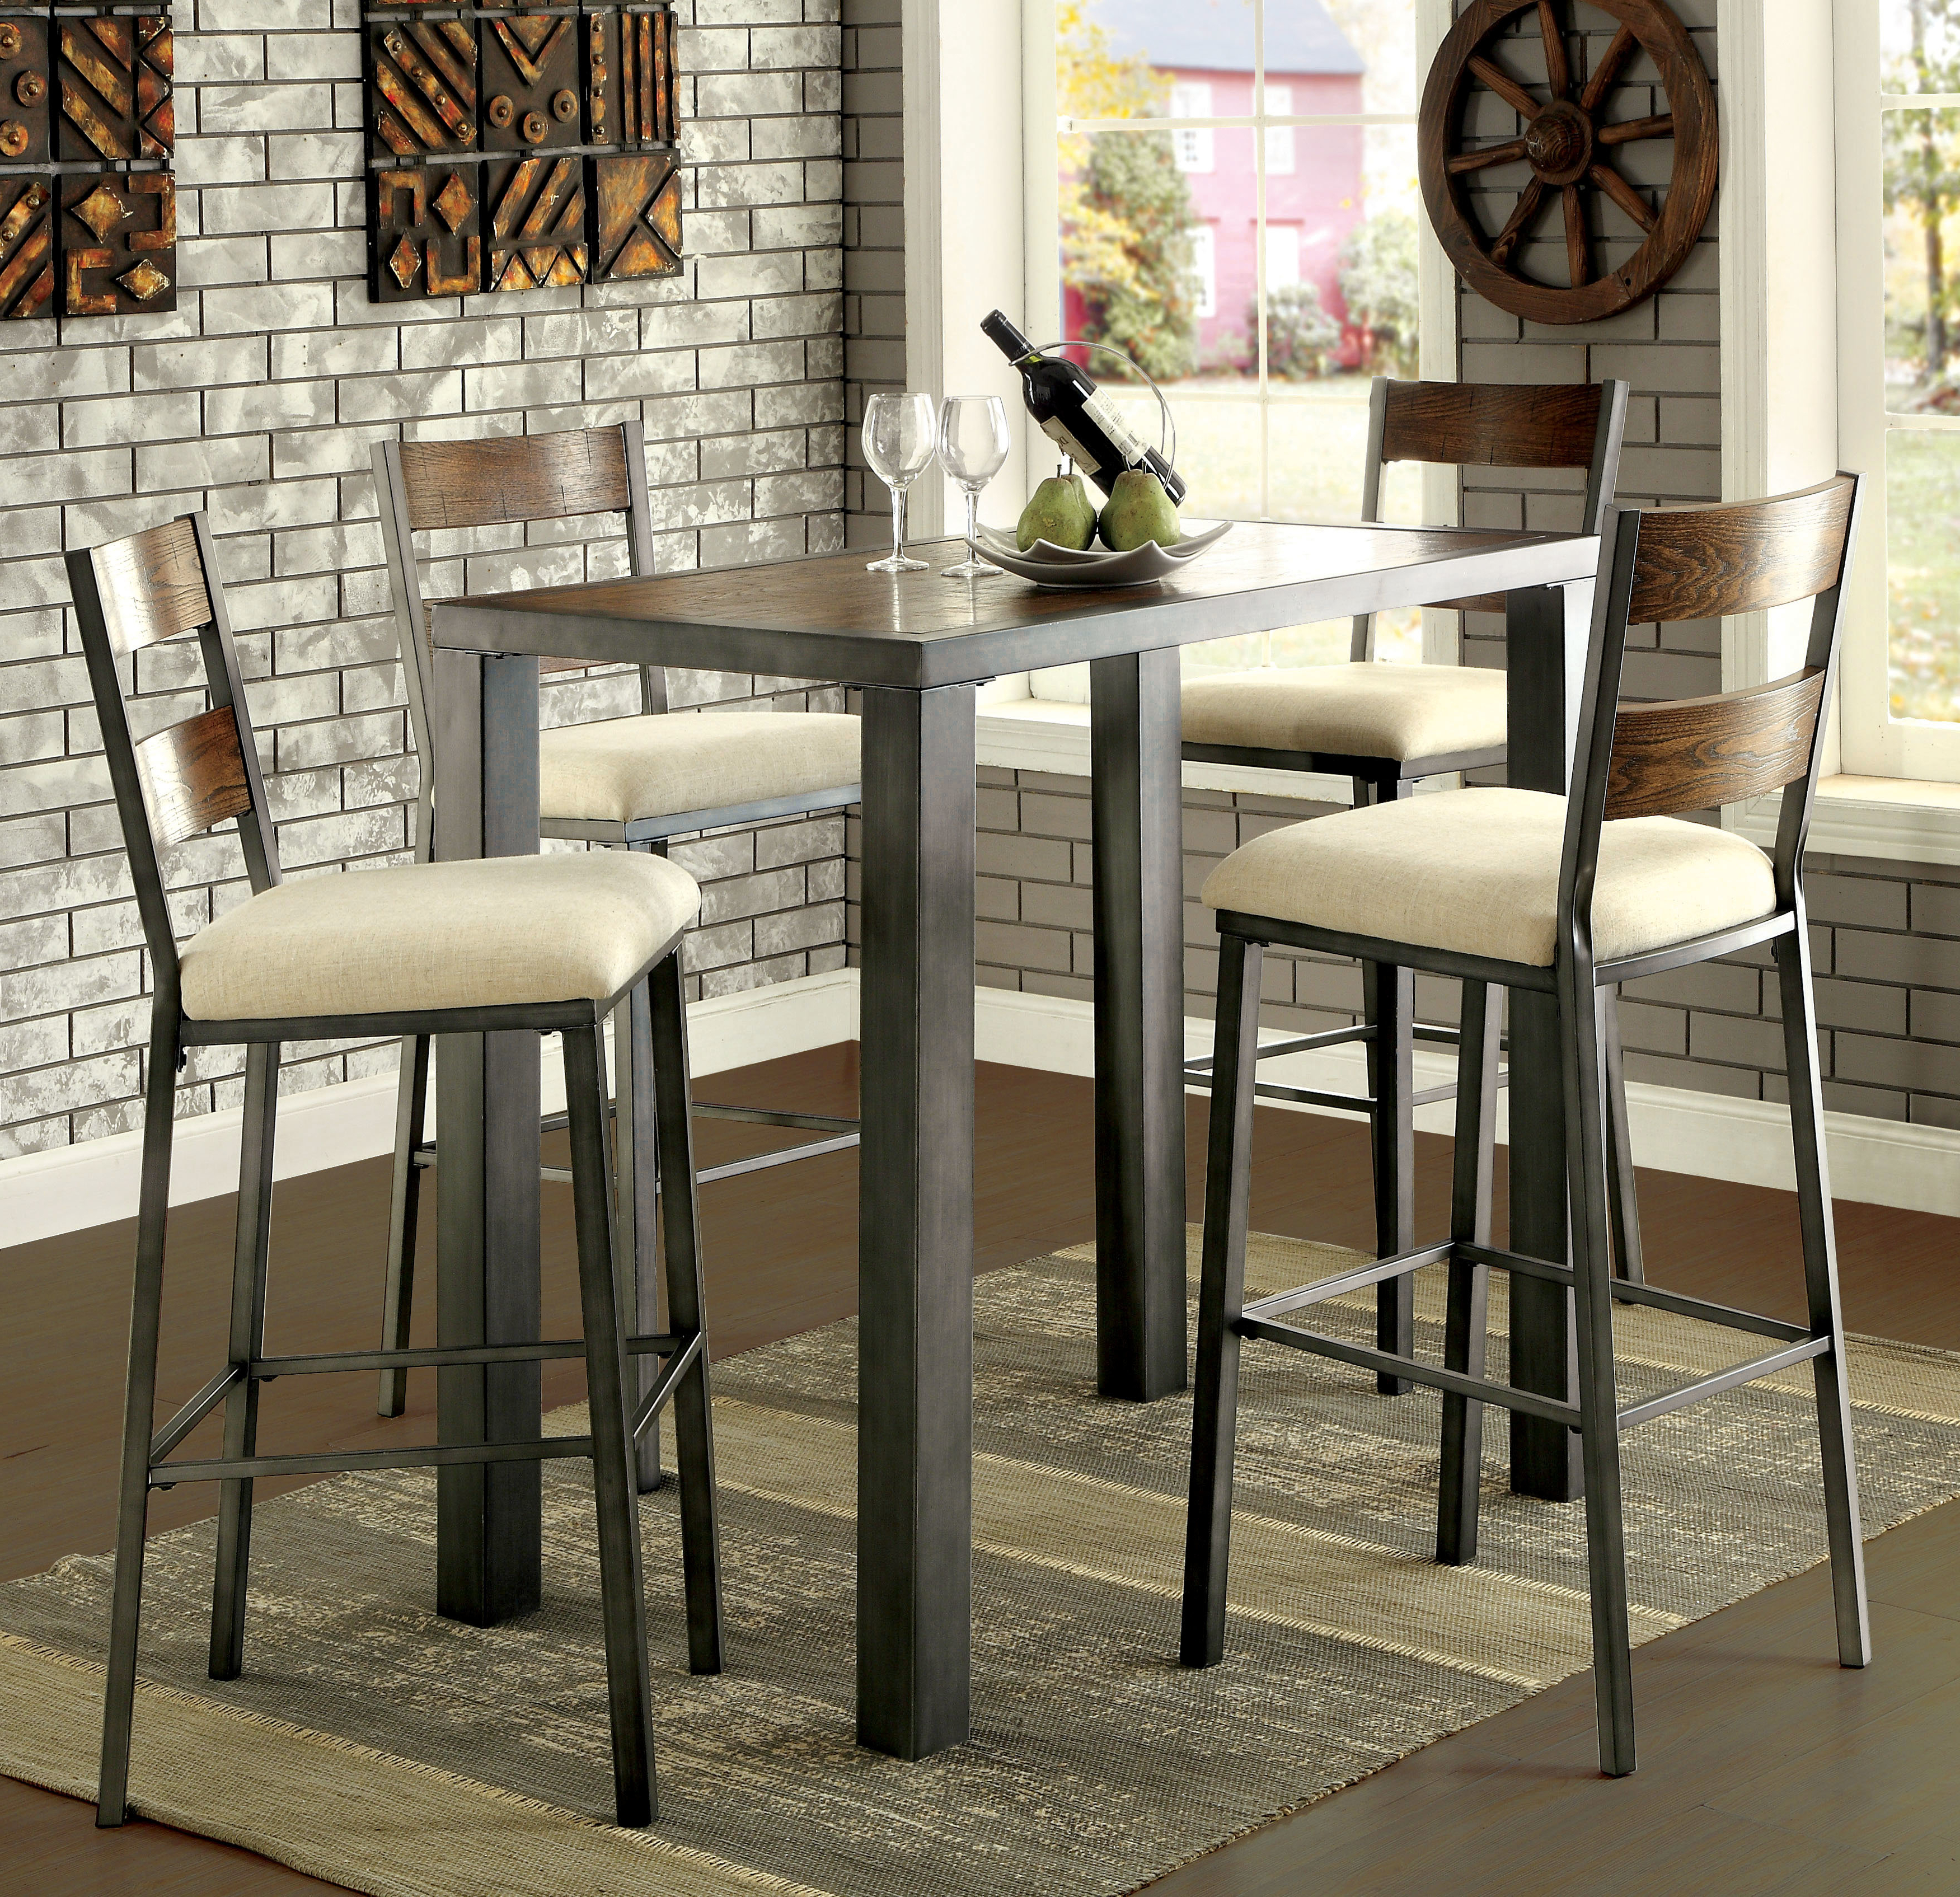 Poynter 3 Piece Drop Leaf Dining Sets Intended For Well Known Red Barrel Studio Thurman 5 Piece Pub Table Set & Reviews (View 13 of 25)